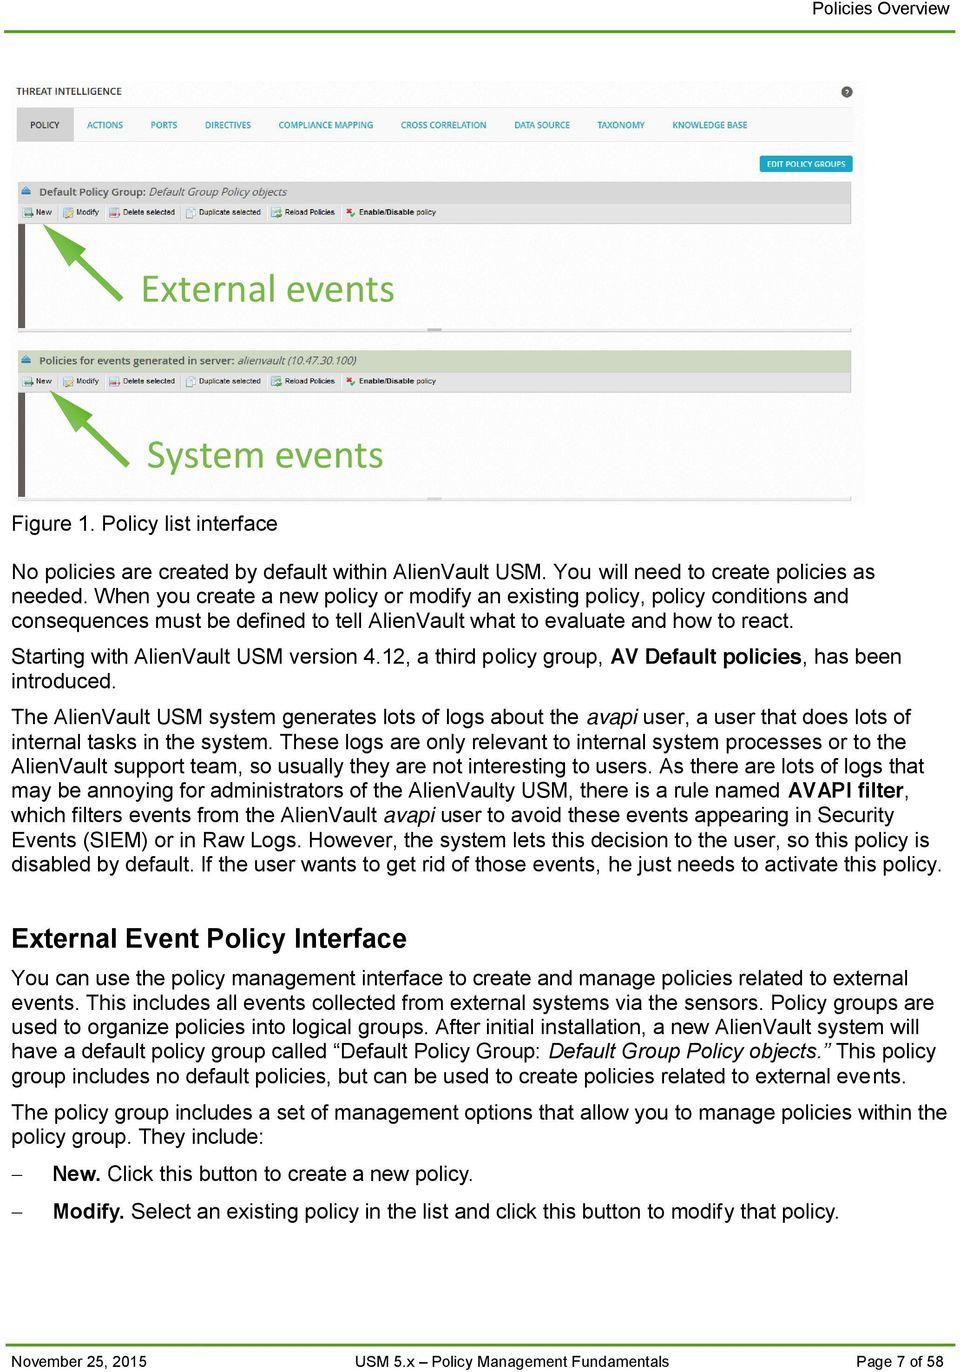 Starting with AlienVault USM version 4.12, a third policy group, AV Default policies, has been introduced.